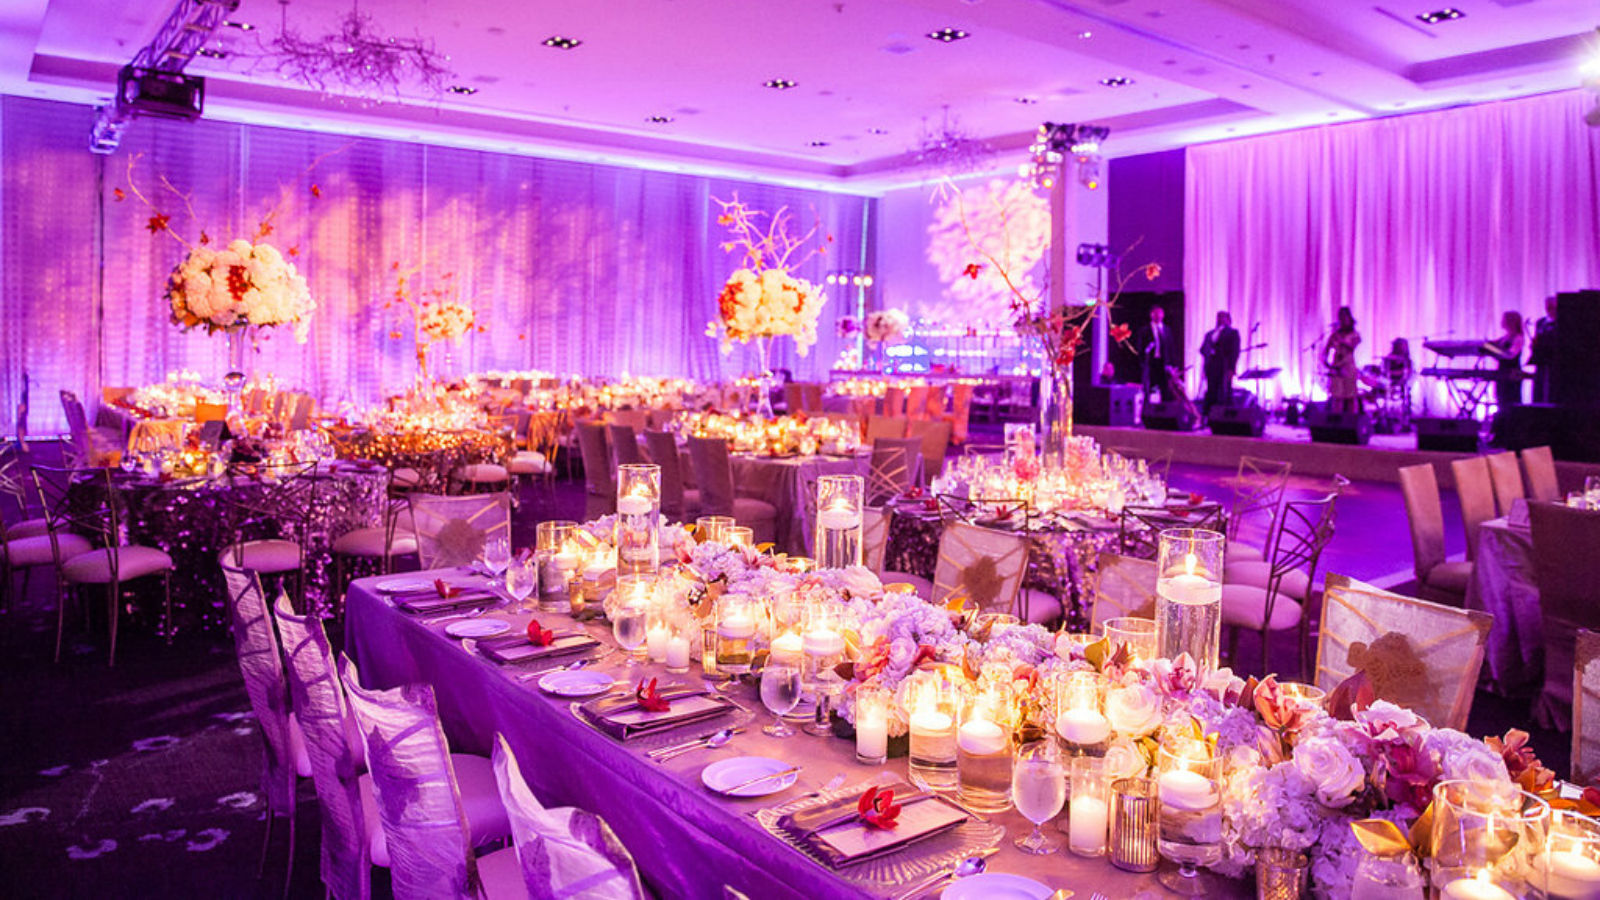 Celebrate your wedding in your own original style at The St. Regis San Francisco